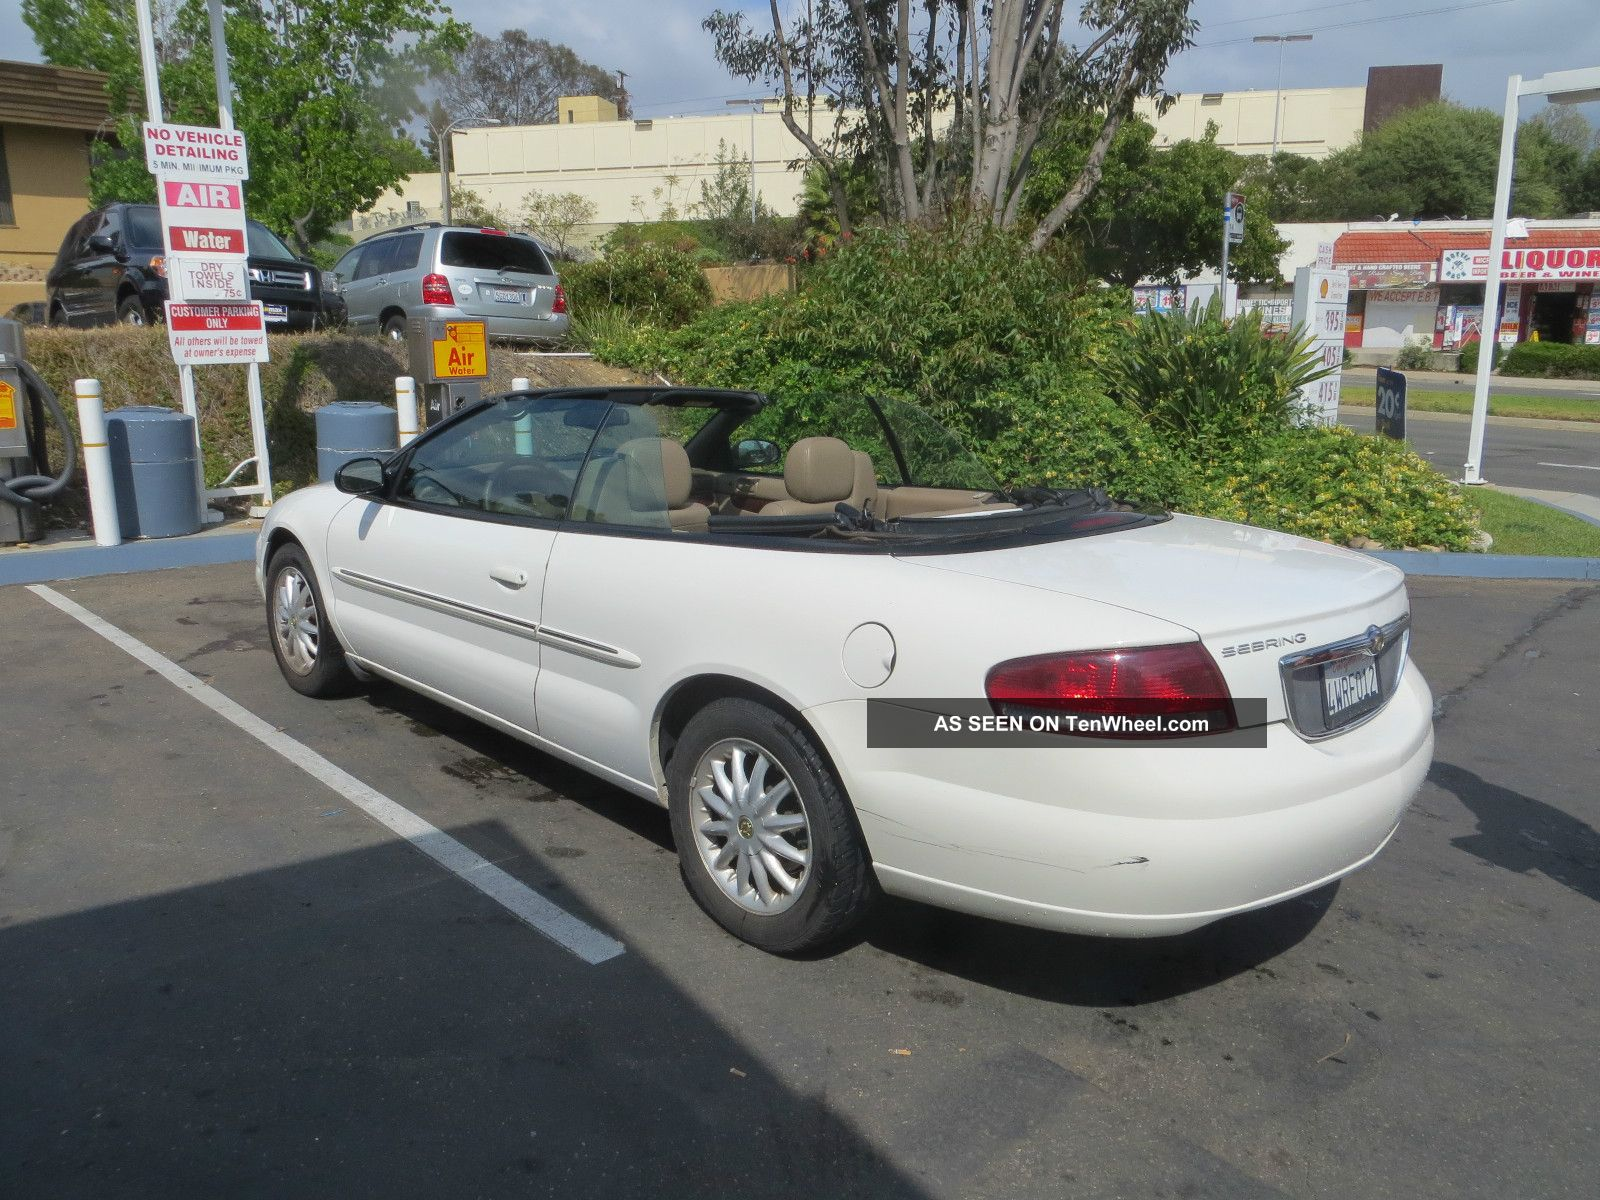 2002 chrysler sebring lxi convertible 2 door 2 7l sebring photo 3. Cars Review. Best American Auto & Cars Review